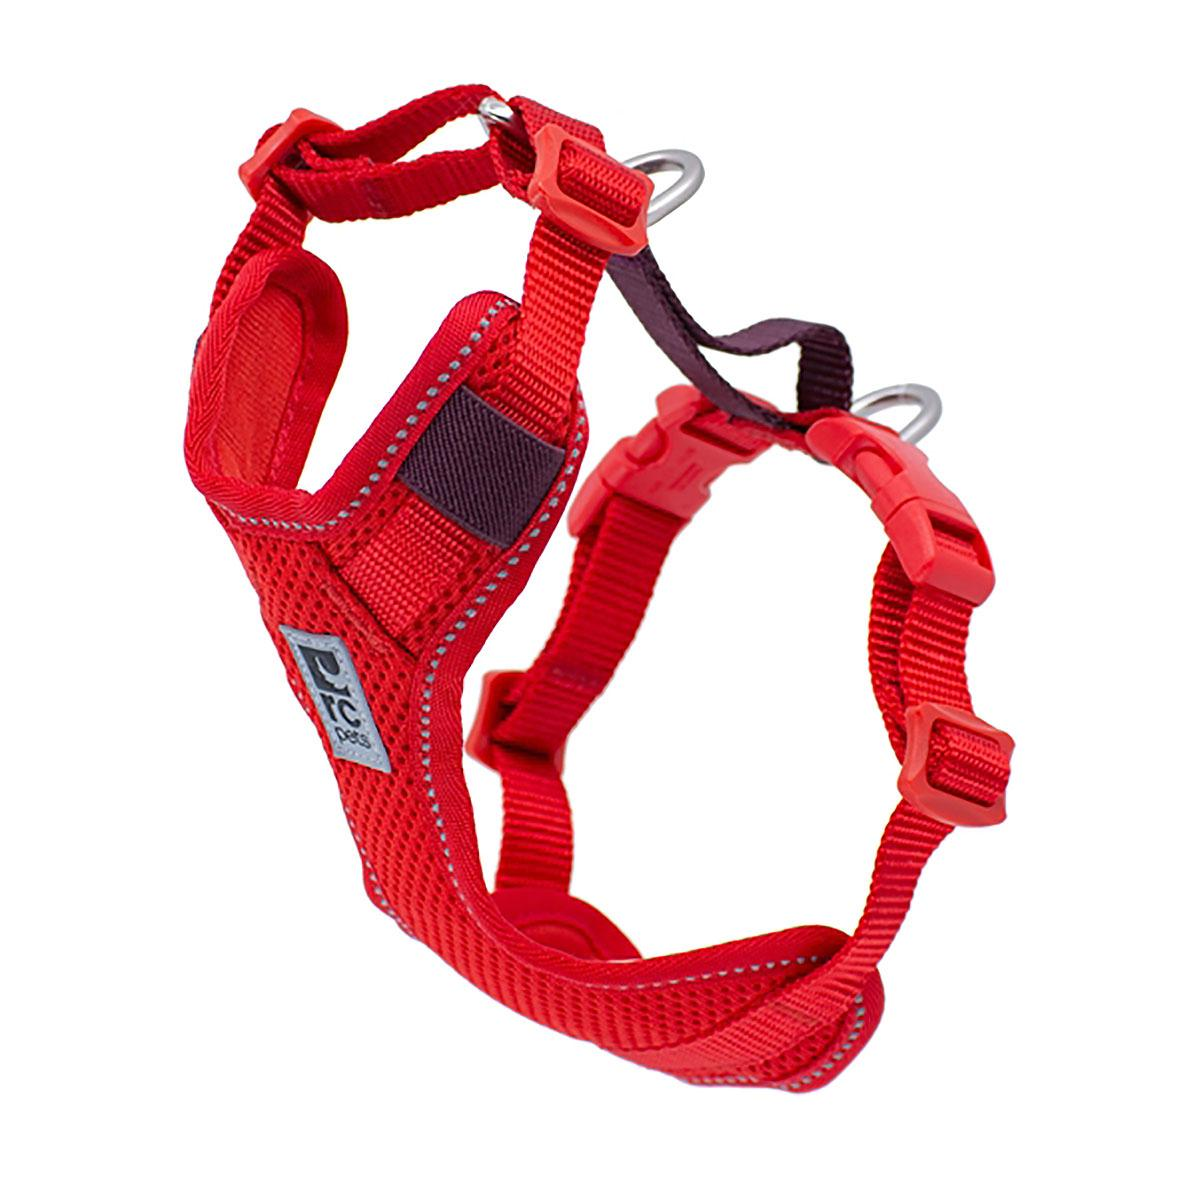 Moto Control Dog Harness - Goji Berry/Burgundy